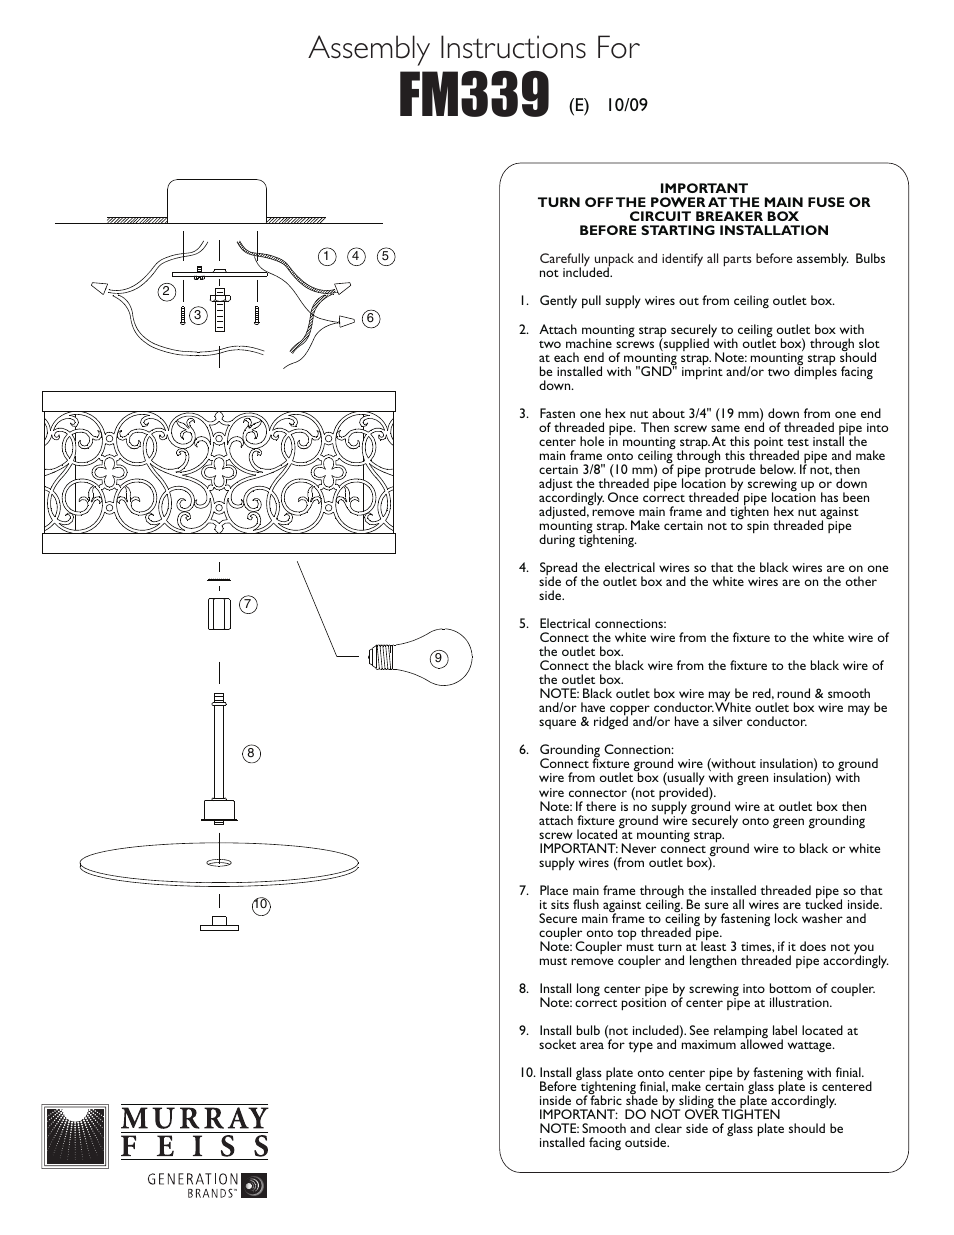 Feiss FM339 User Manual | 1 page